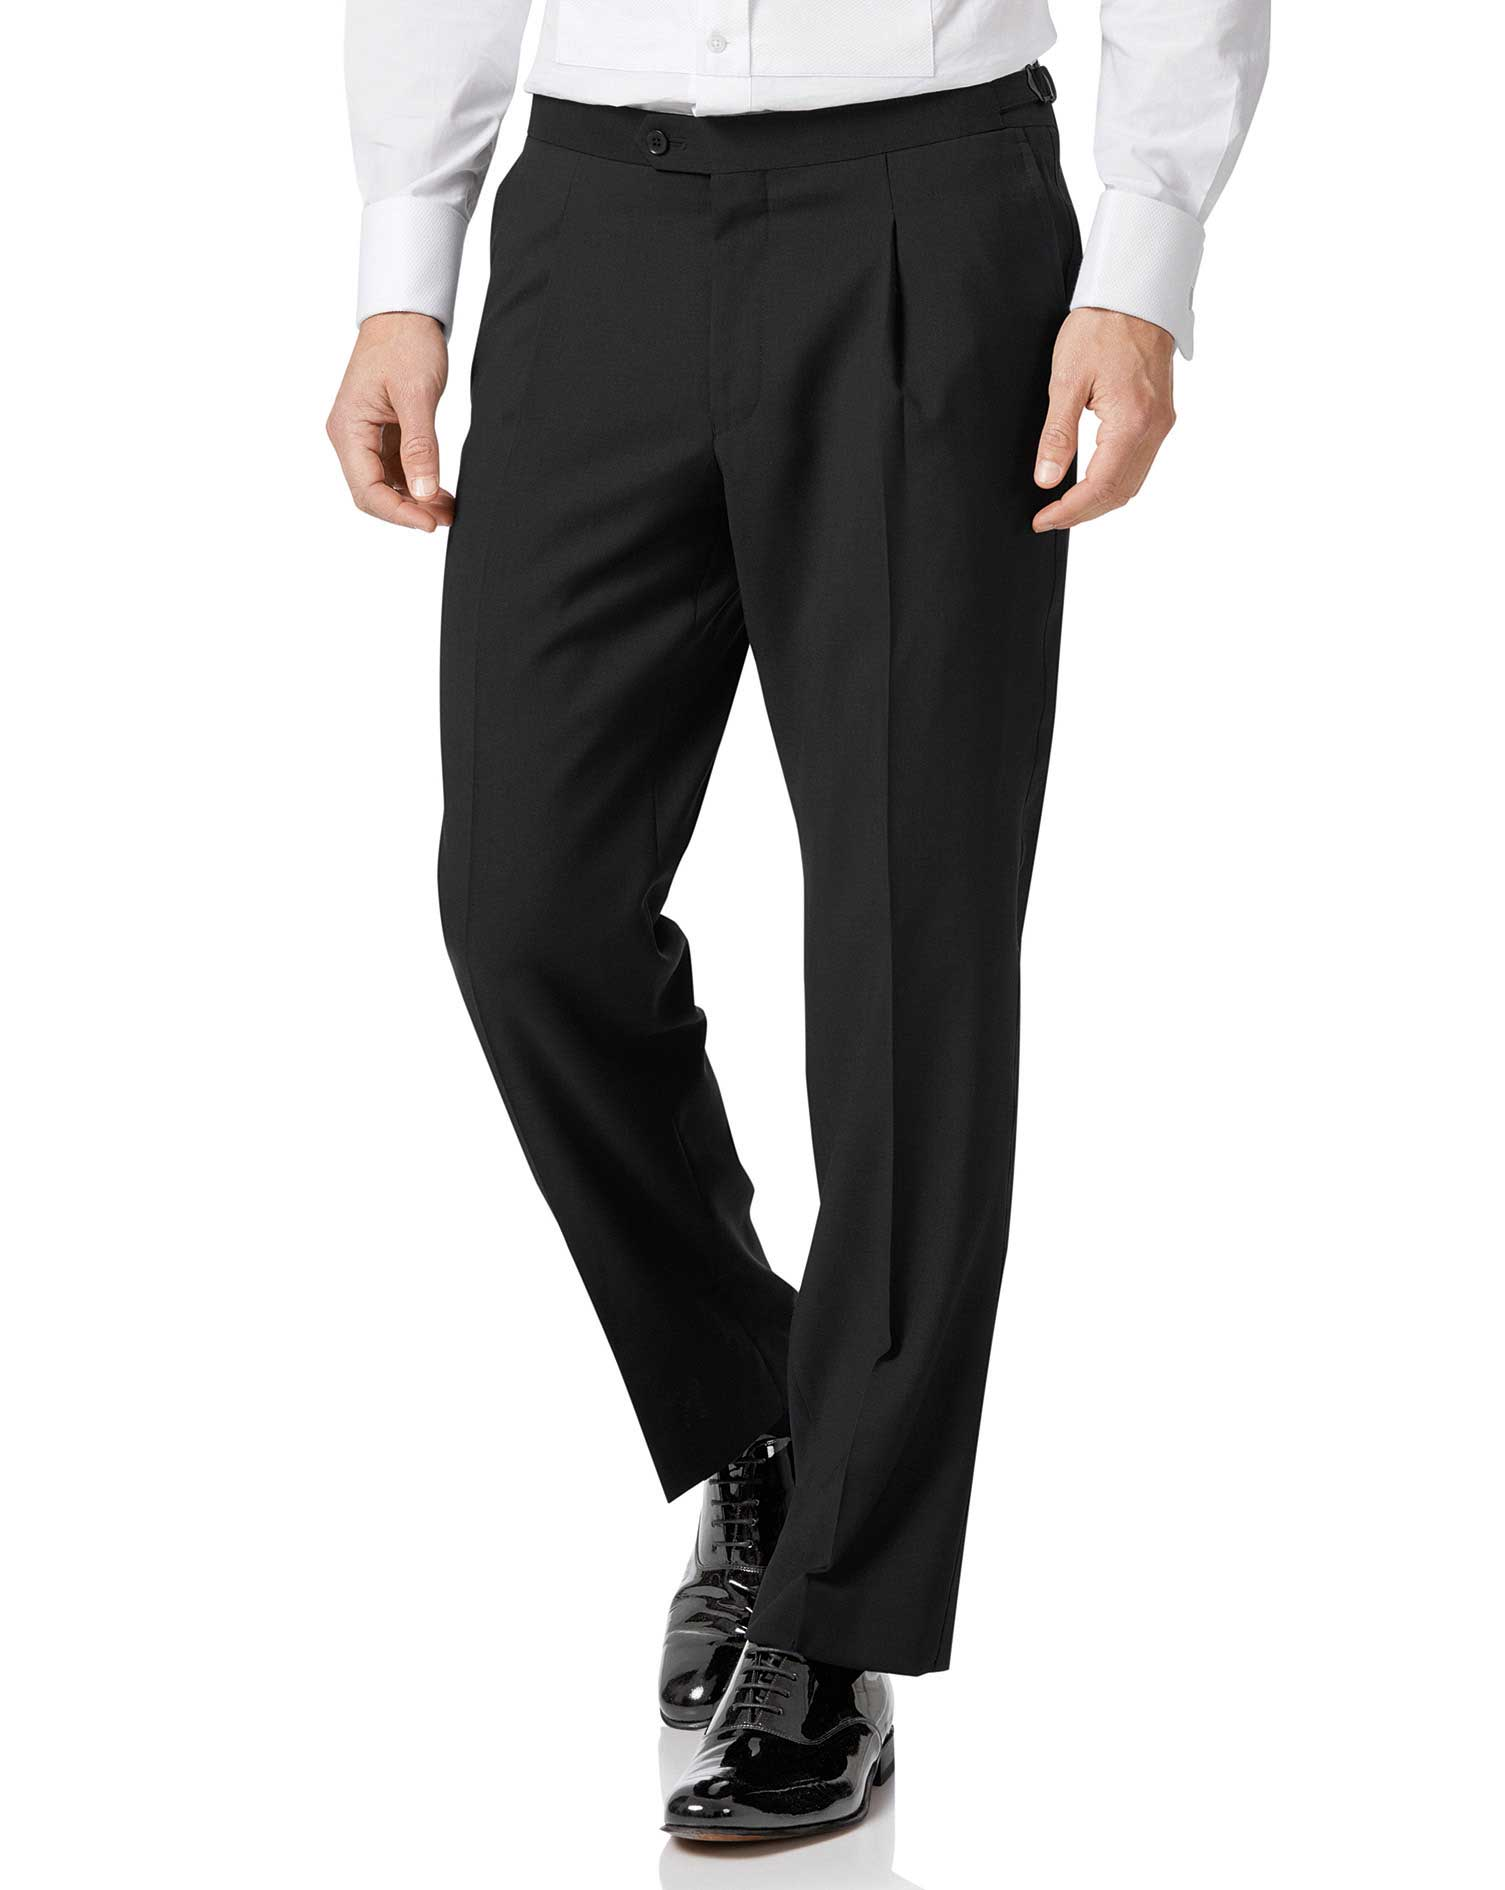 Black Classic Fit Tuxedo Trousers Size W40 L34 by Charles Tyrwhitt